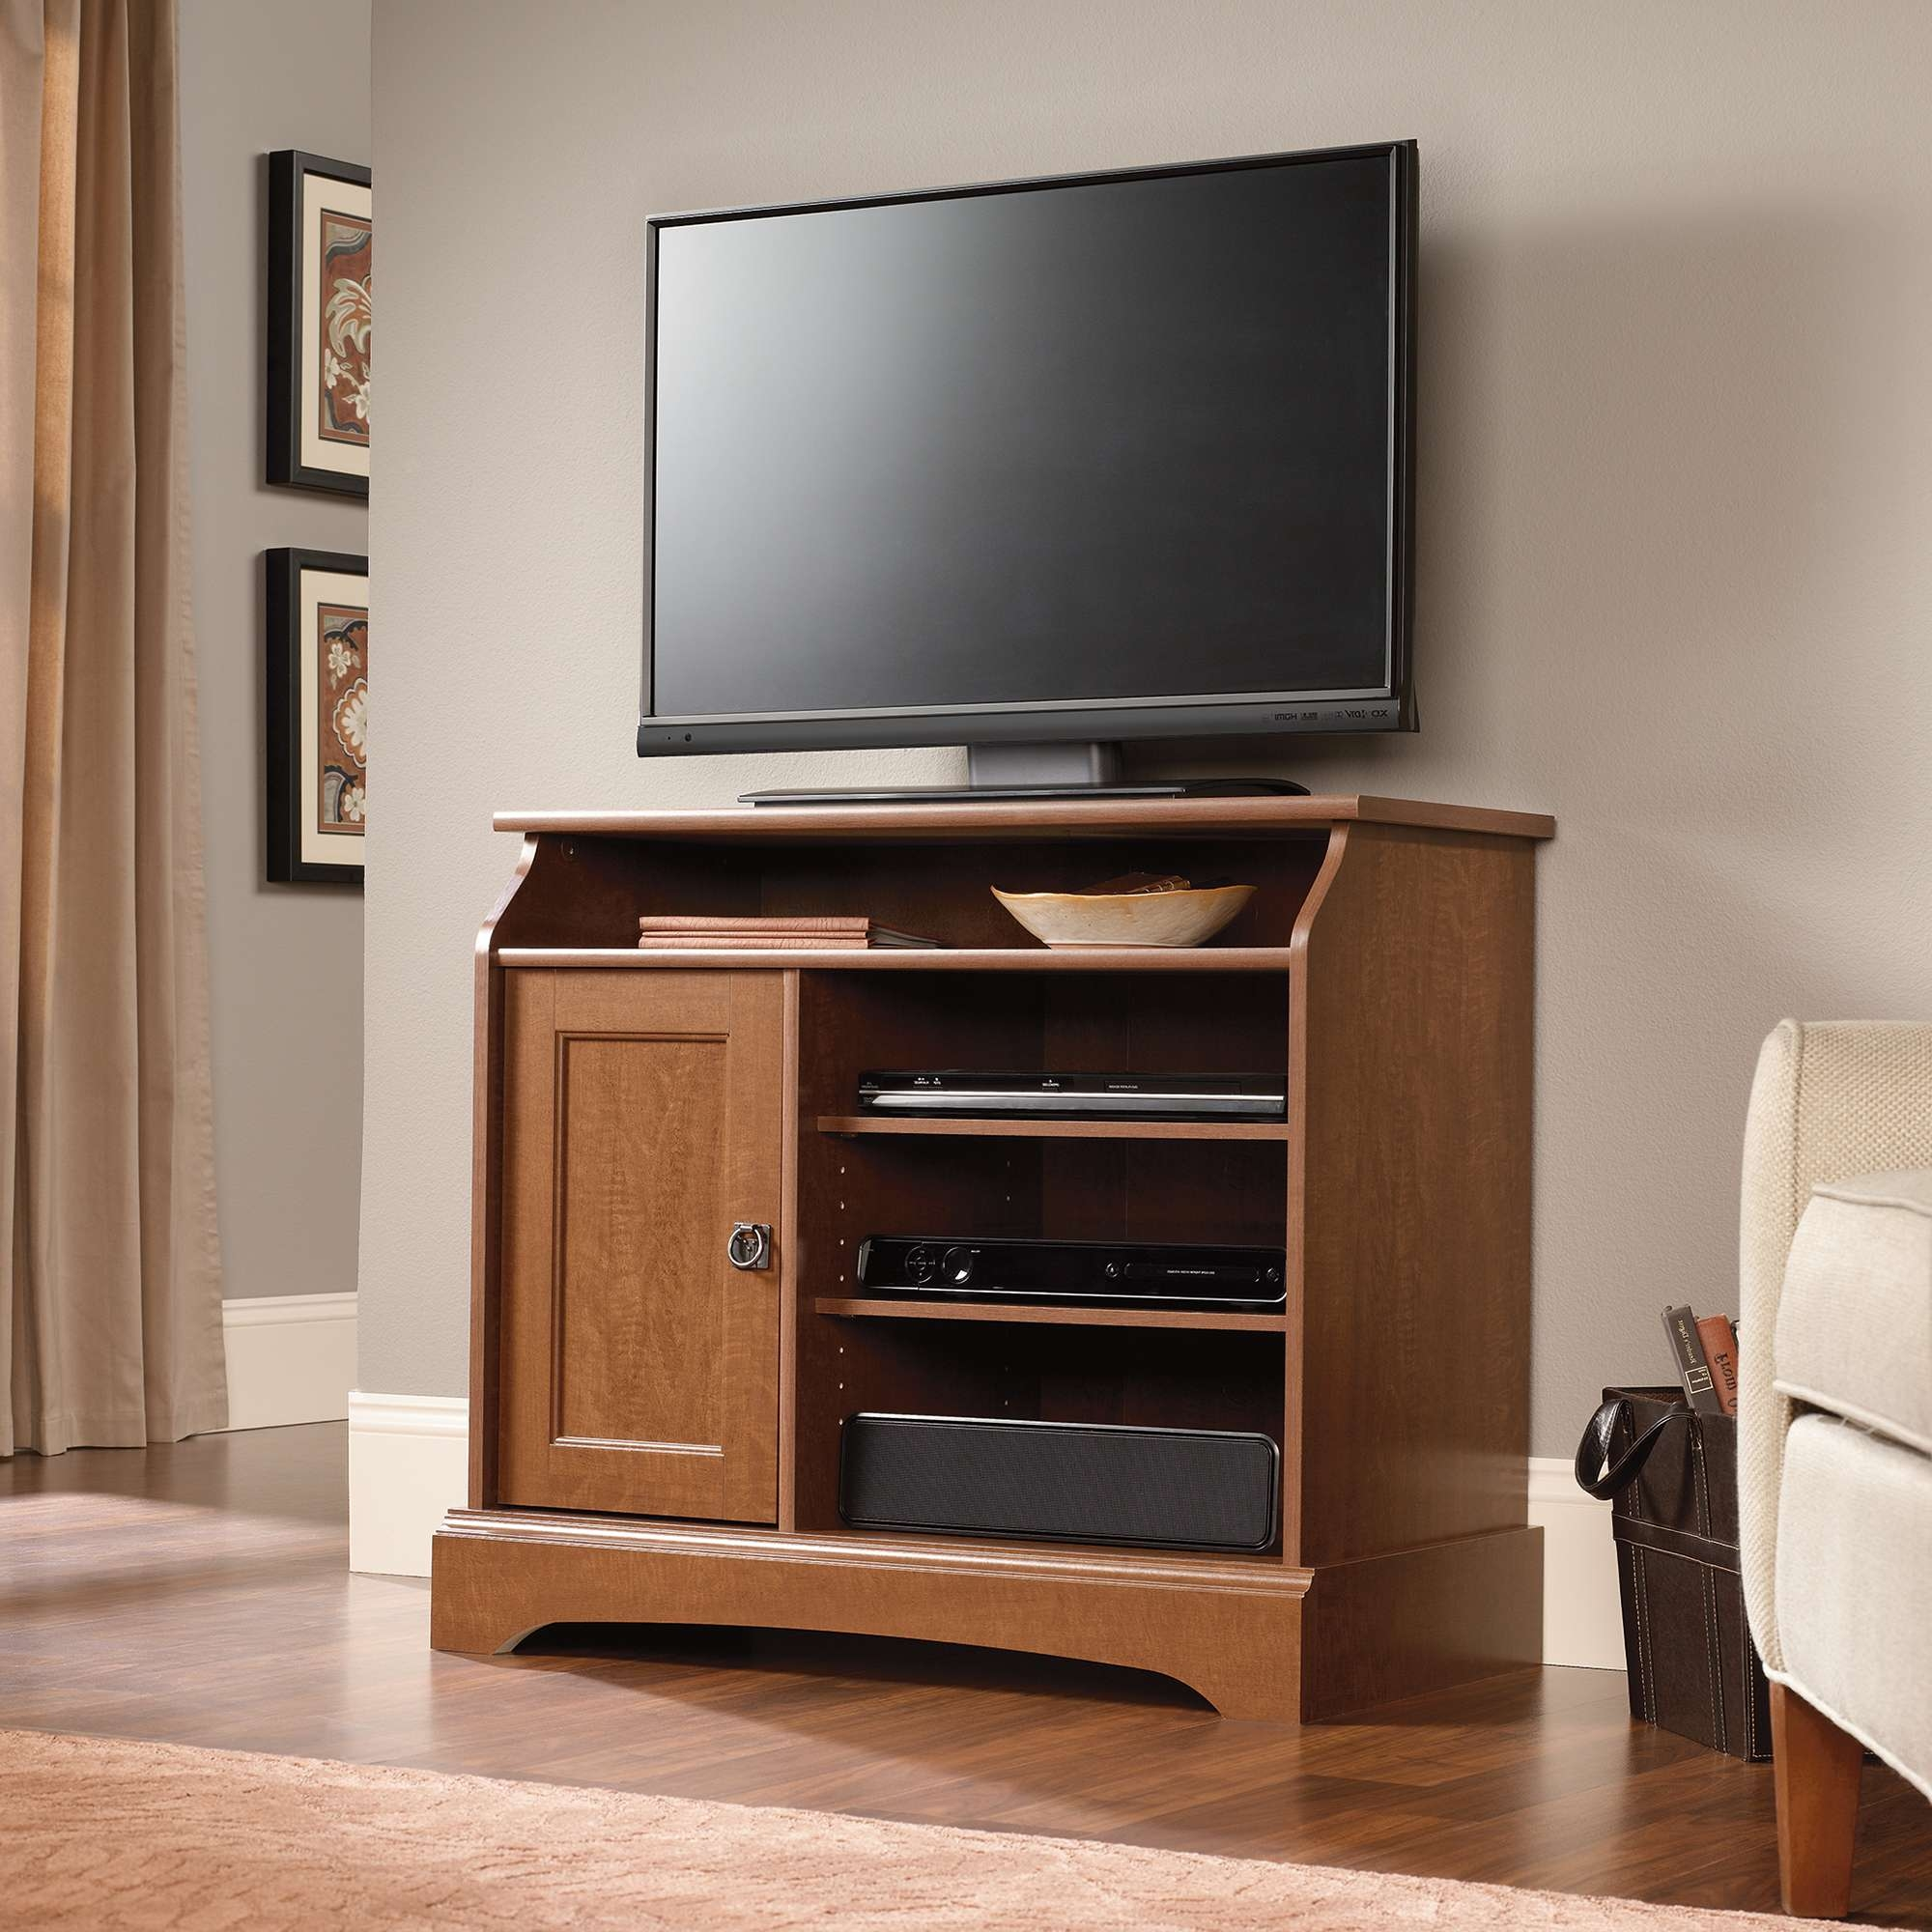 Sauder Select | Highboy Tv Stand | 408972 | Sauder For Maple Wood Tv Stands (View 6 of 15)